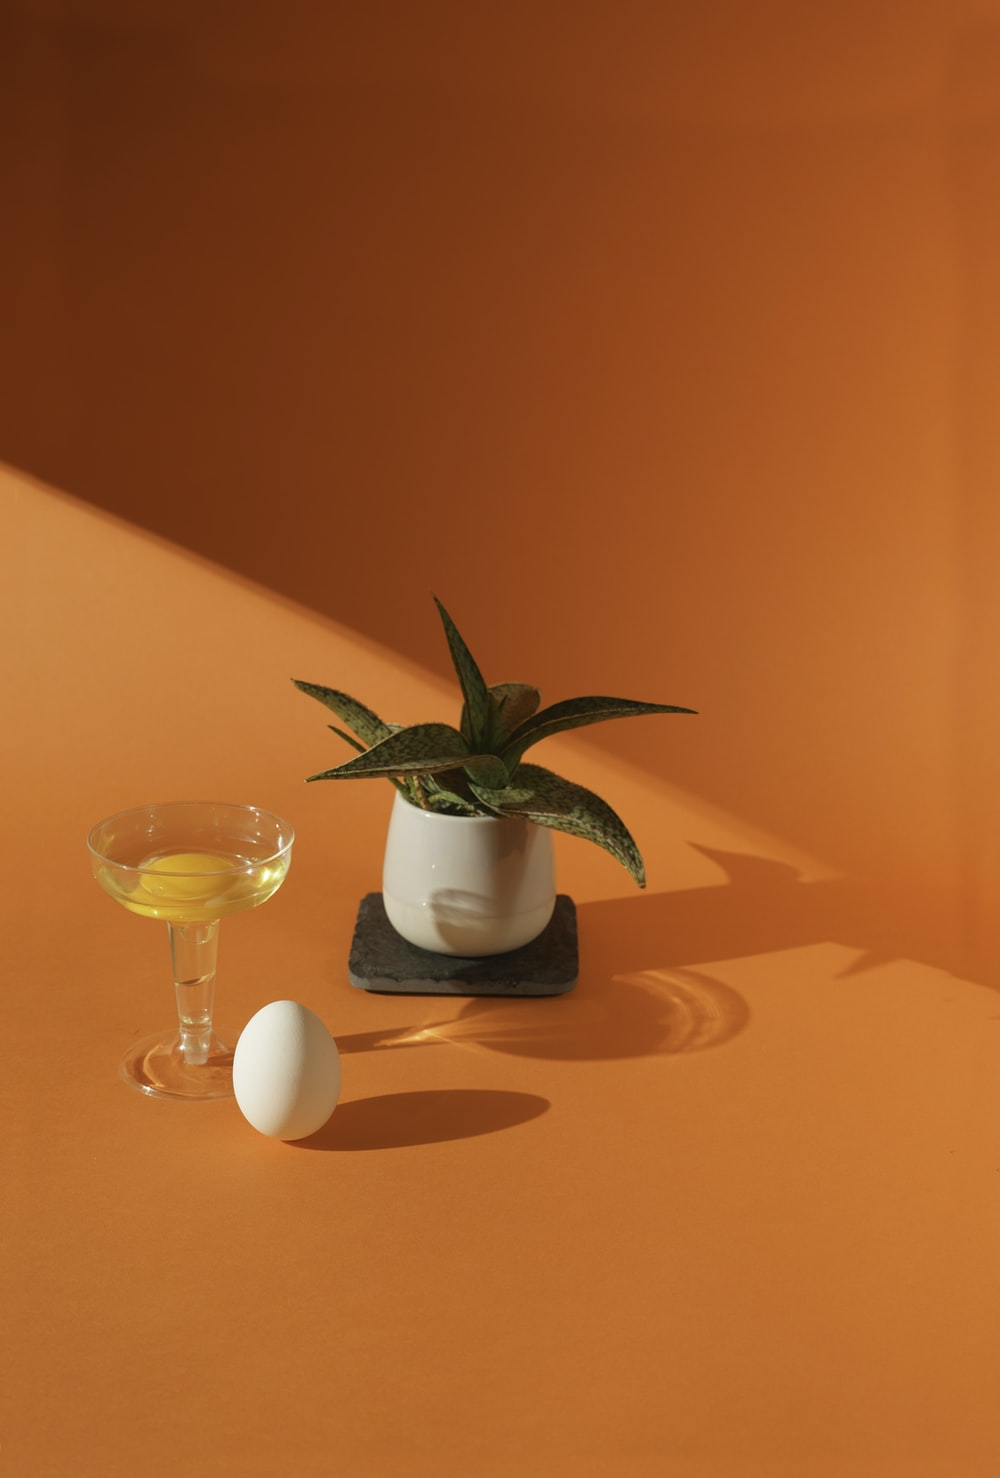 green plant in white ceramic pot on brown wooden table